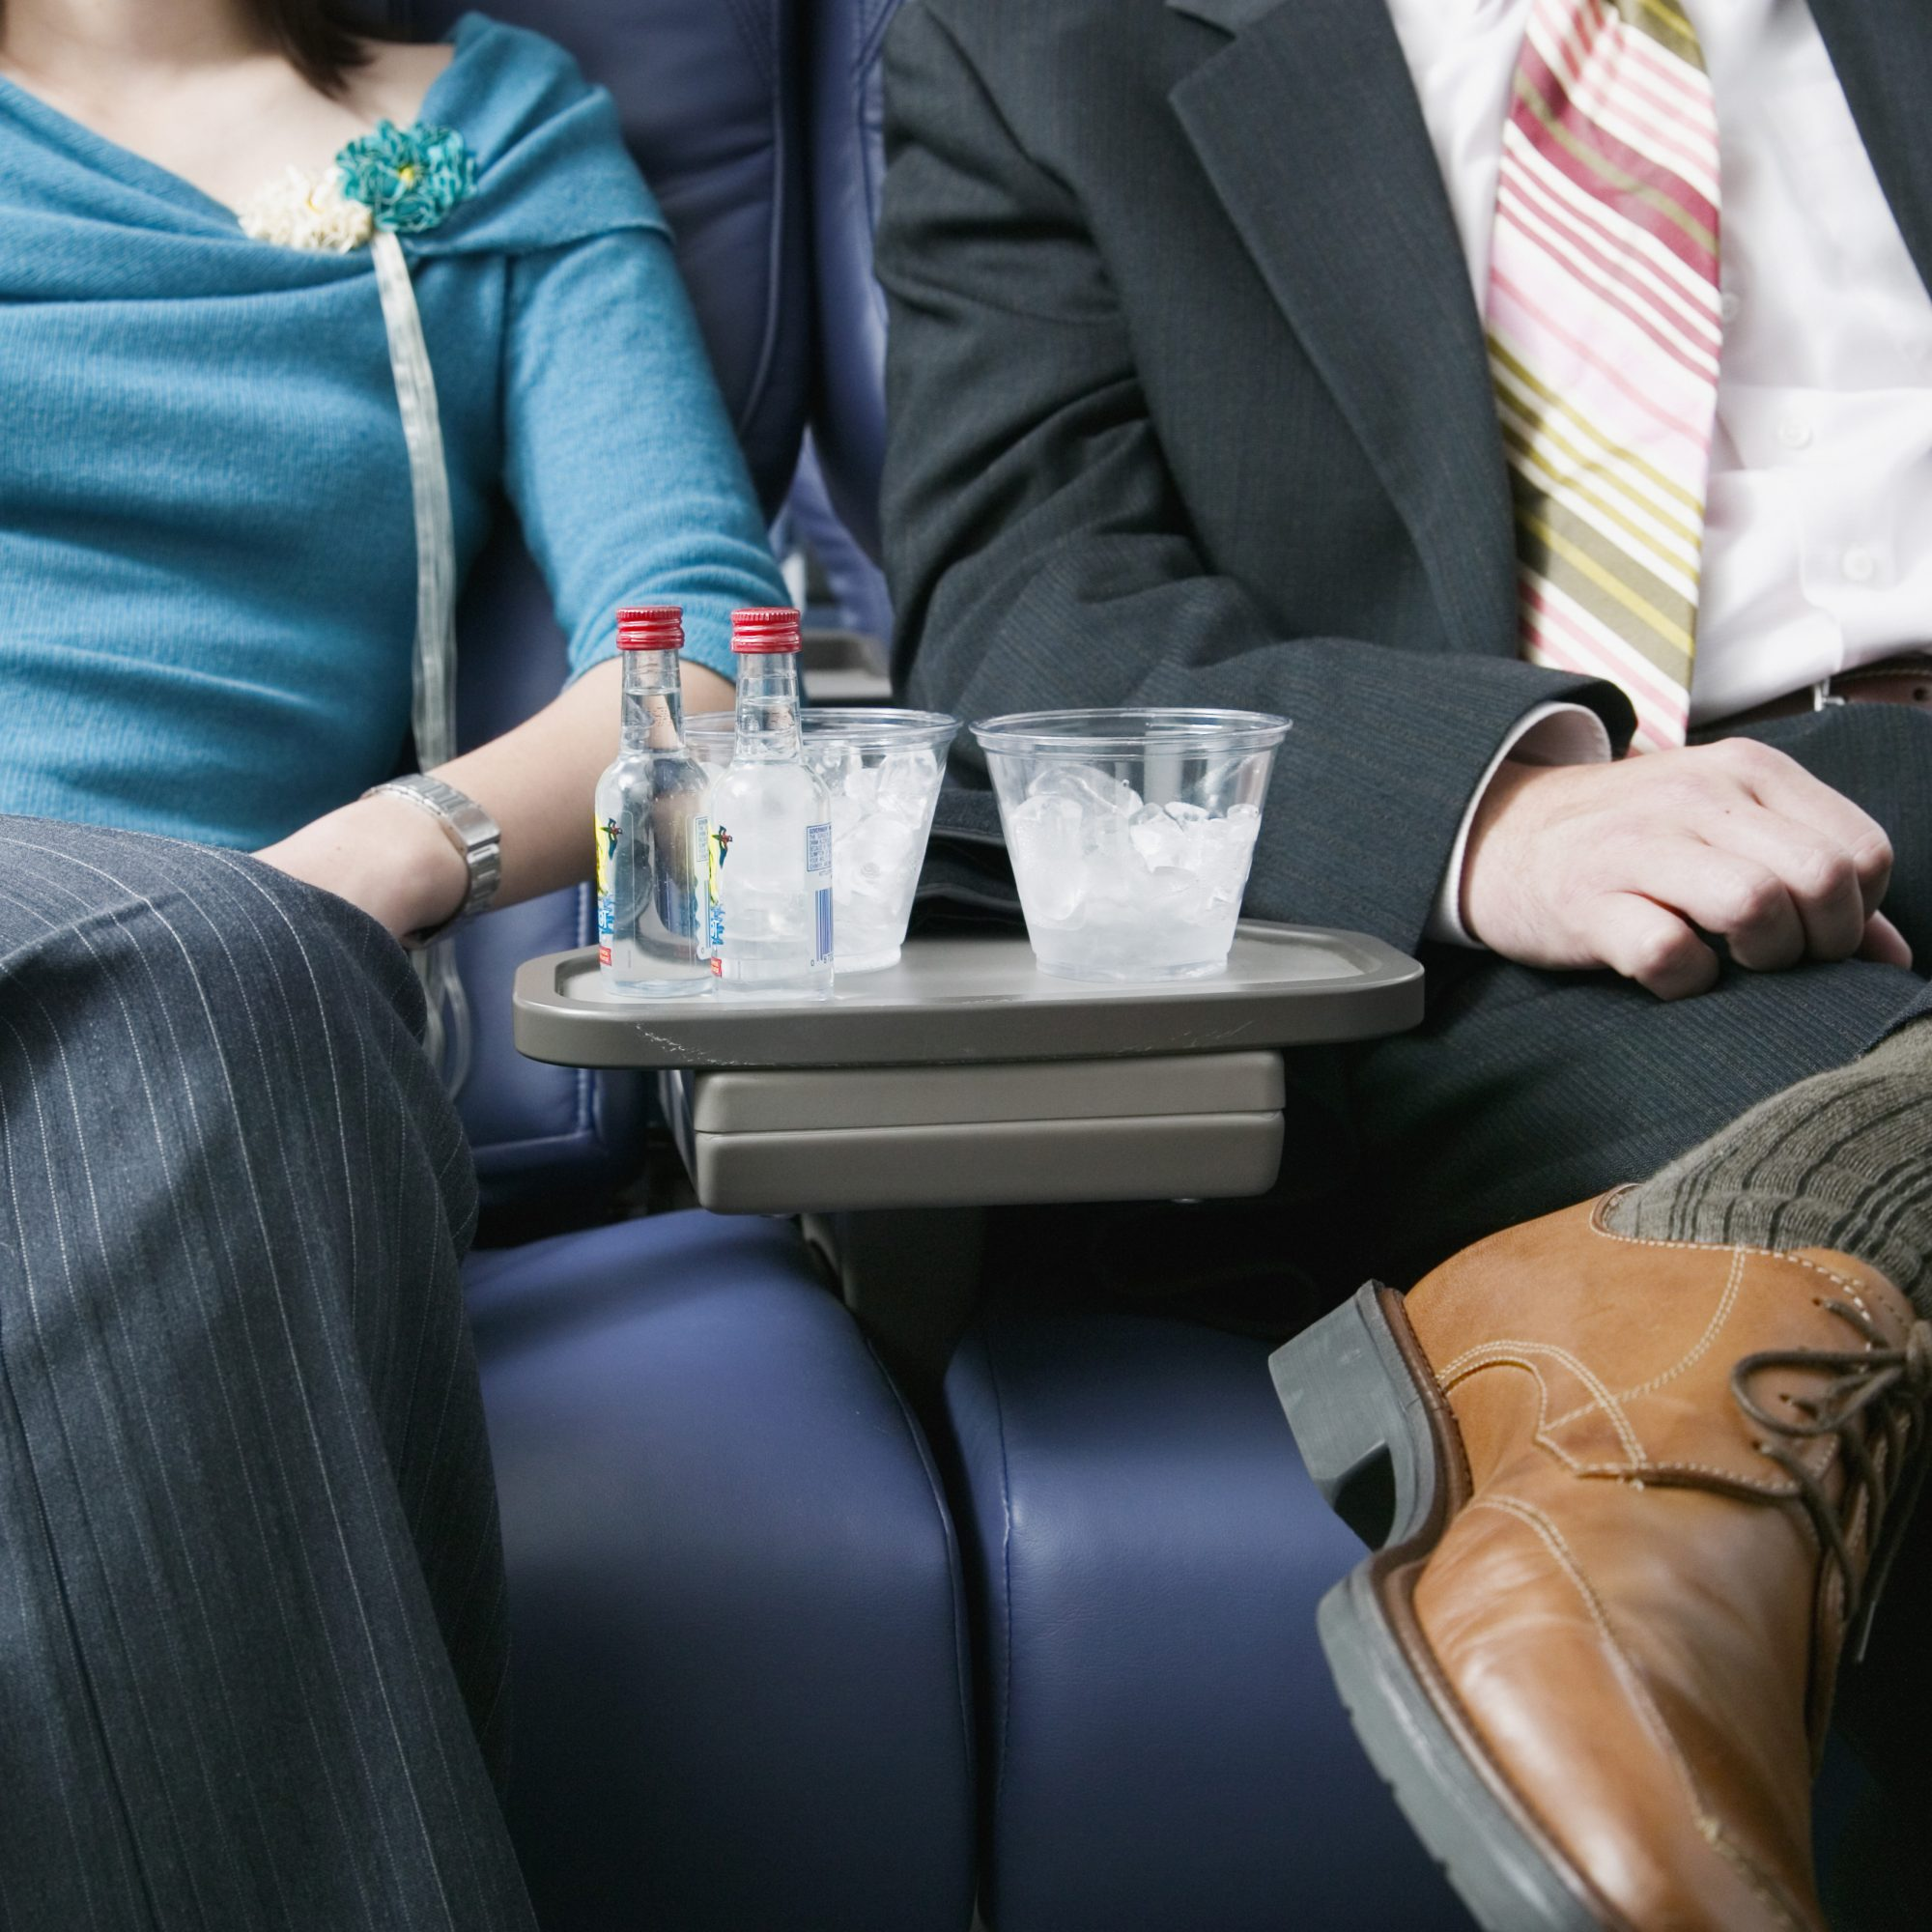 A couple drinks alcohol on a plane